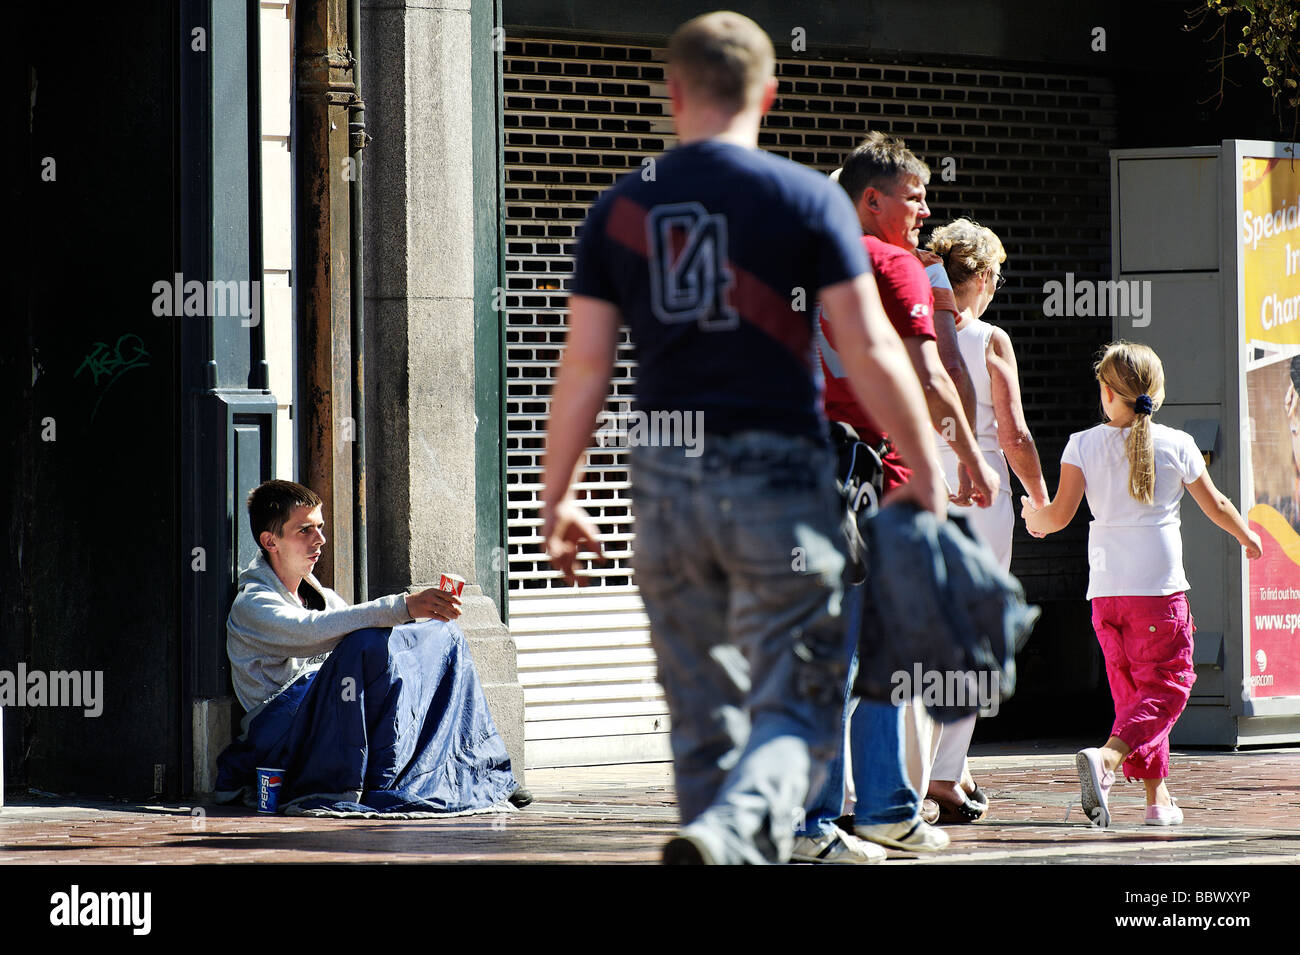 People passing young man begging in the streets of central Dublin Republic of Ireland - Stock Image